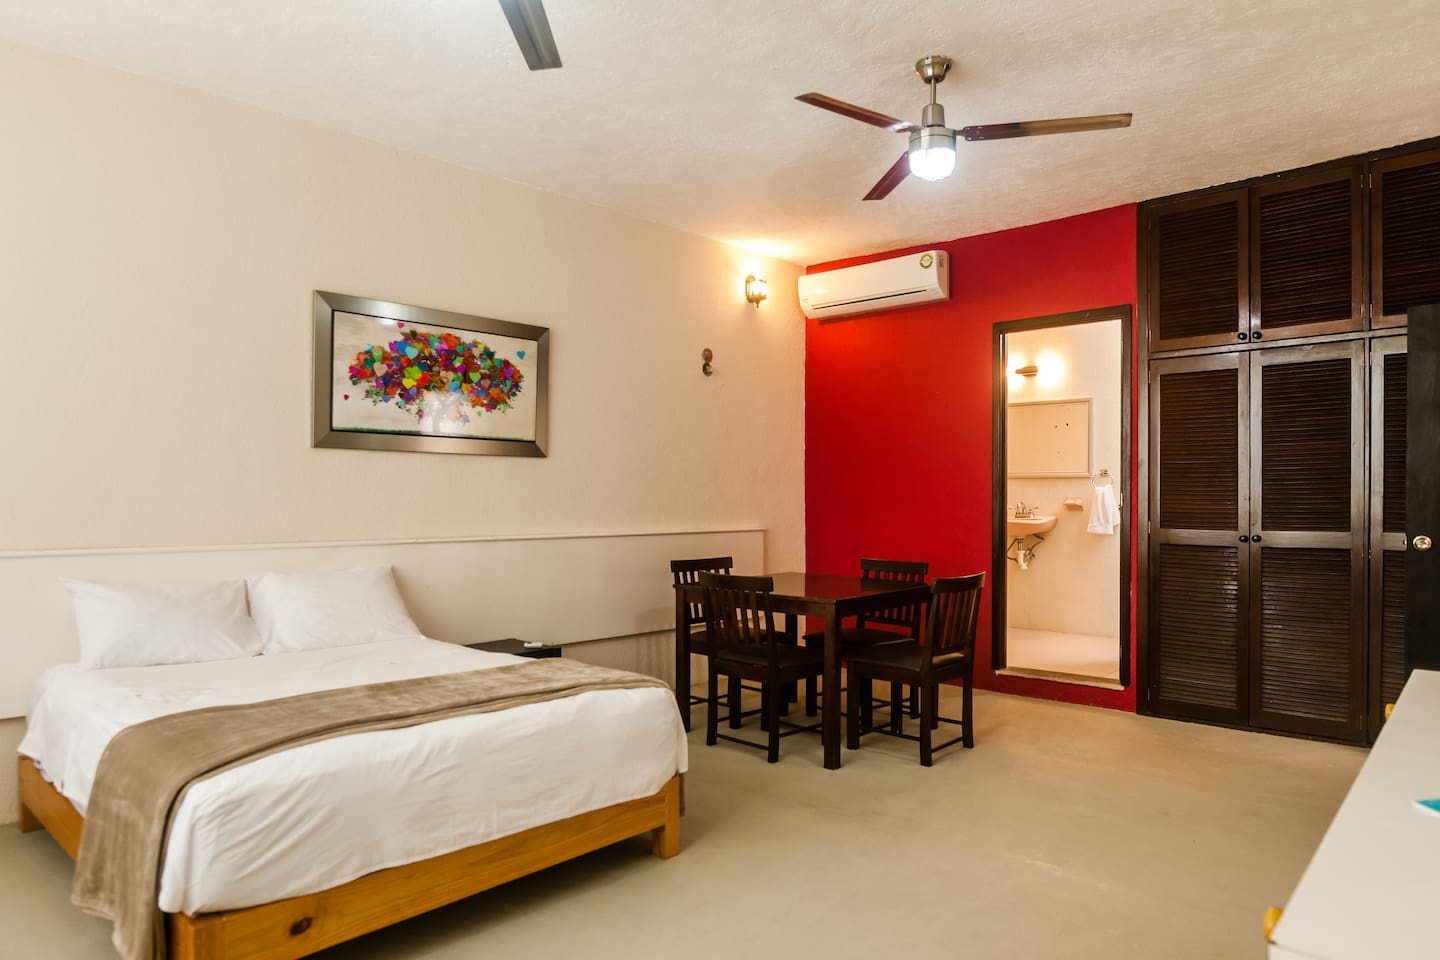 Welcome to La Ceiba Room - whether for business or leisure, enjoy your stay in this wonderful space.